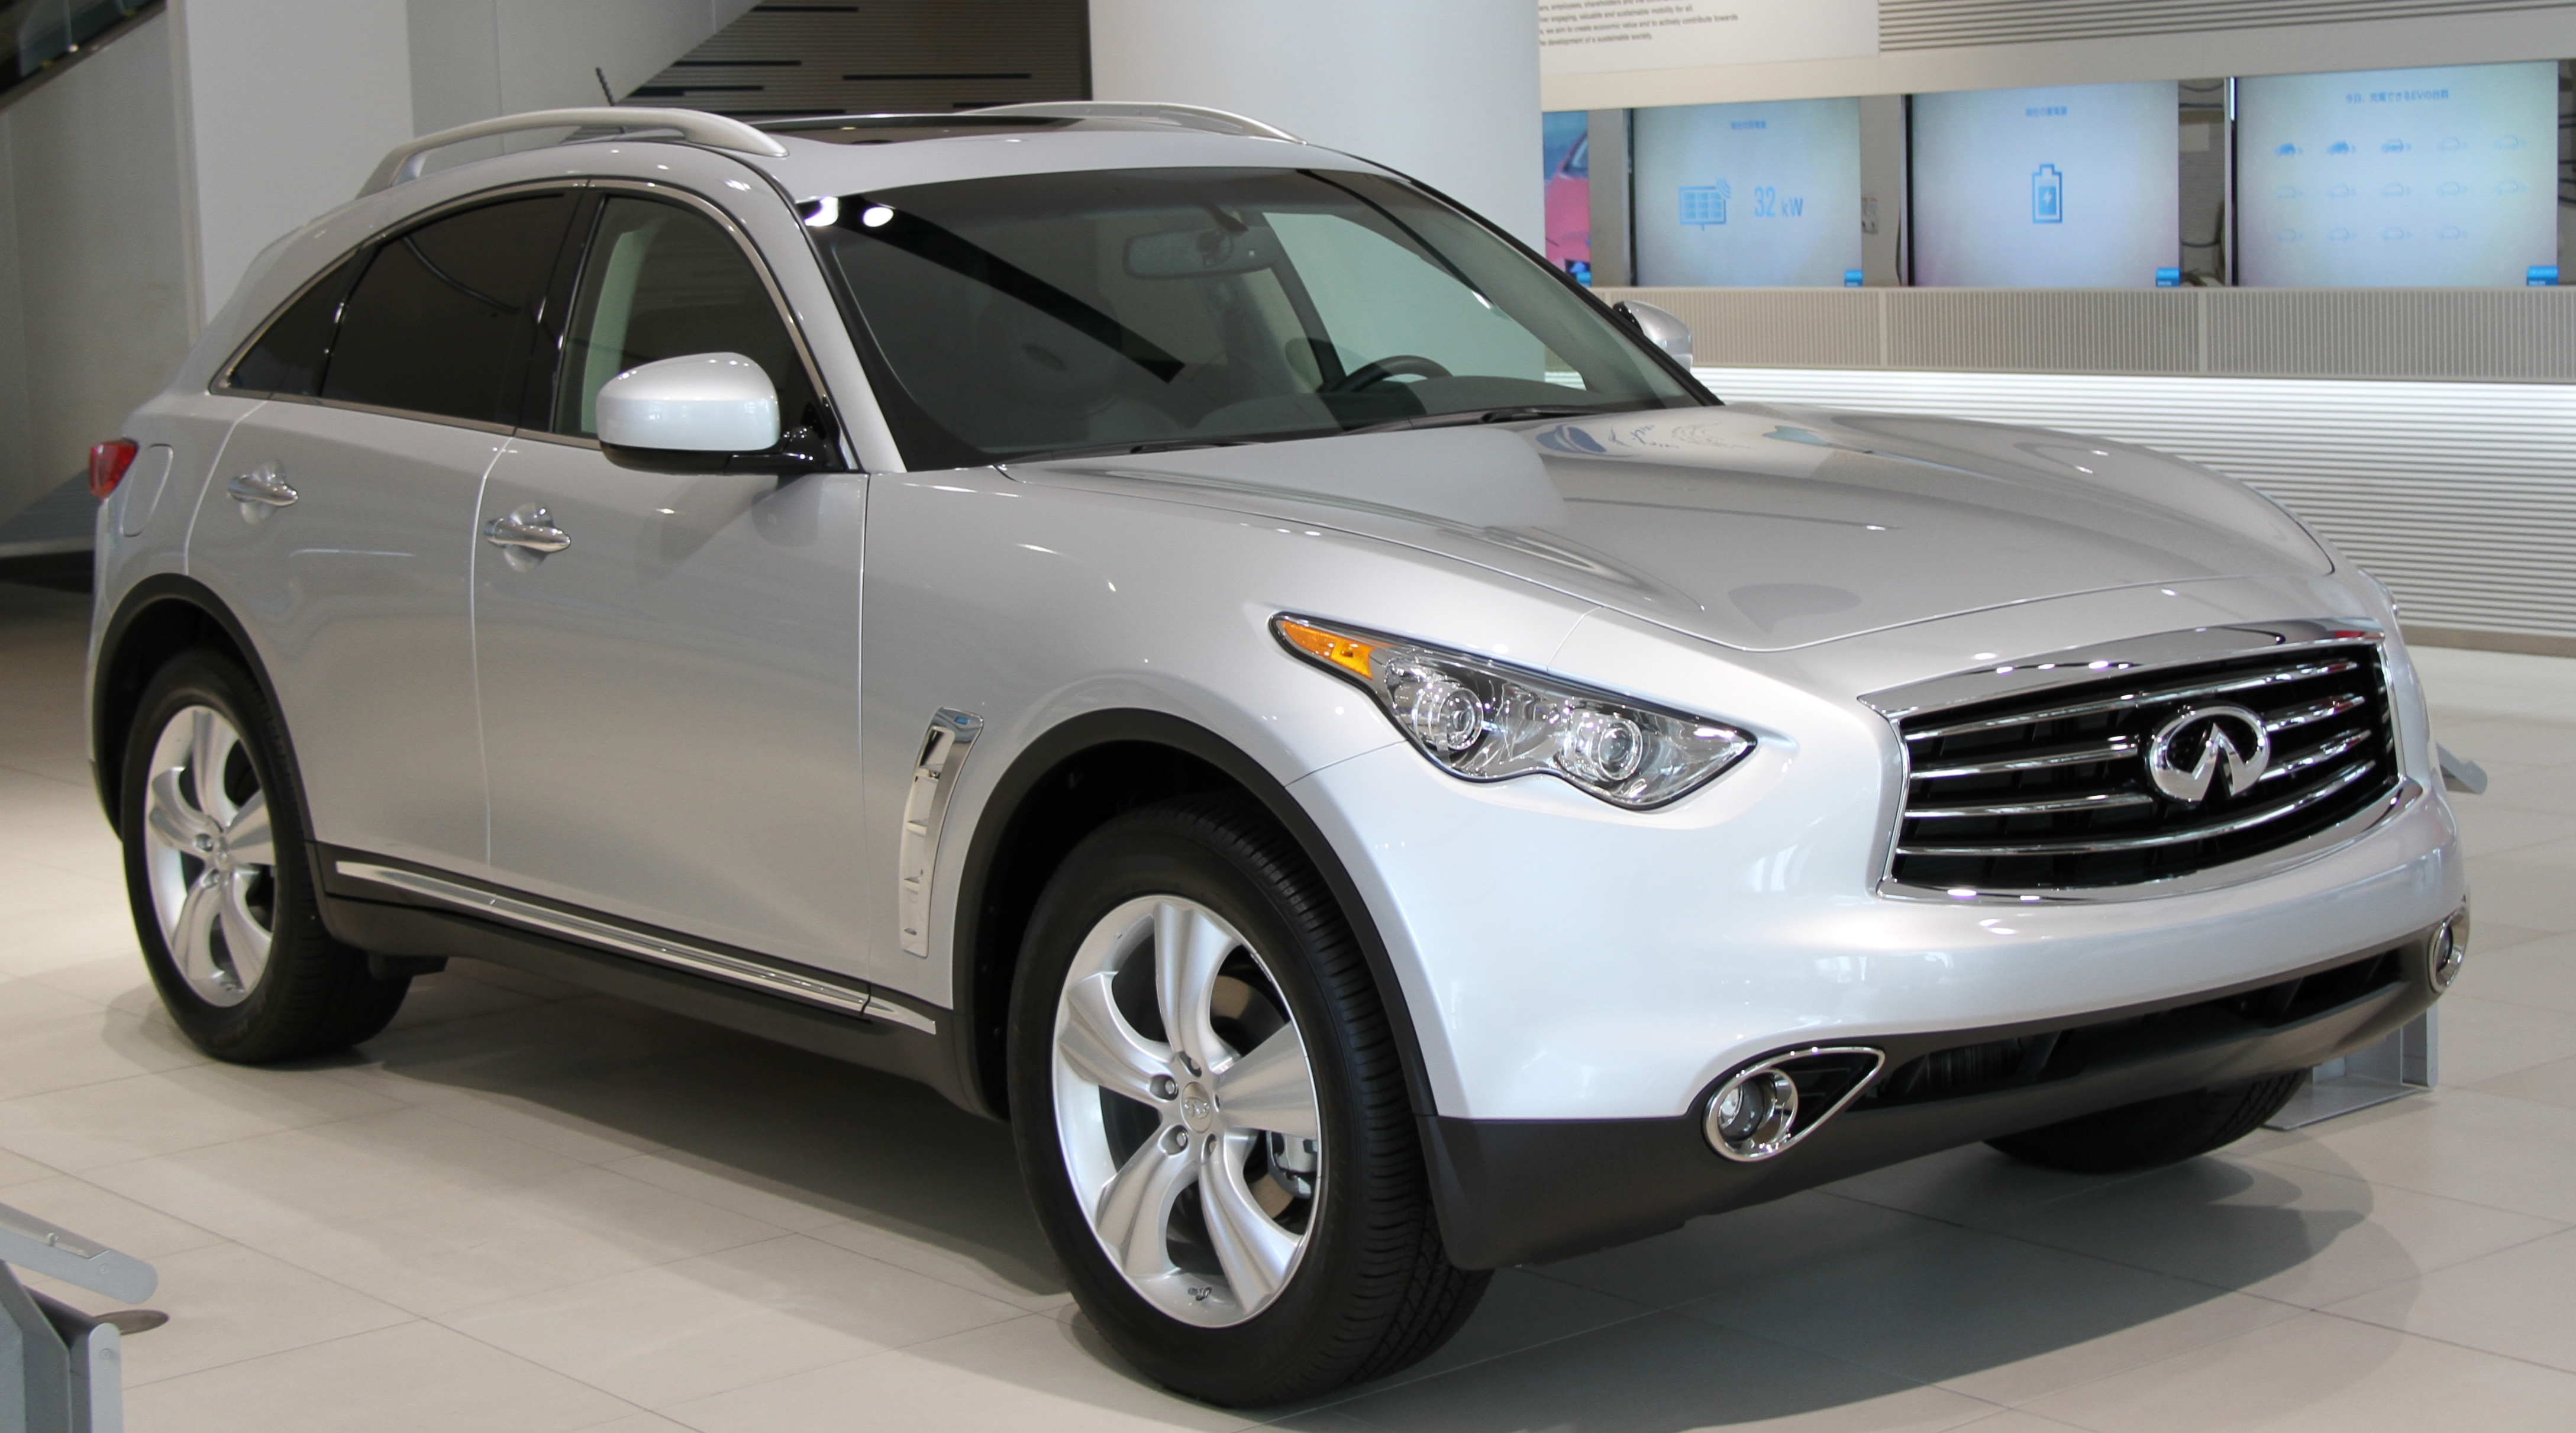 for suv large black base infiniti obsidian groovecar awd infinity sale research composite